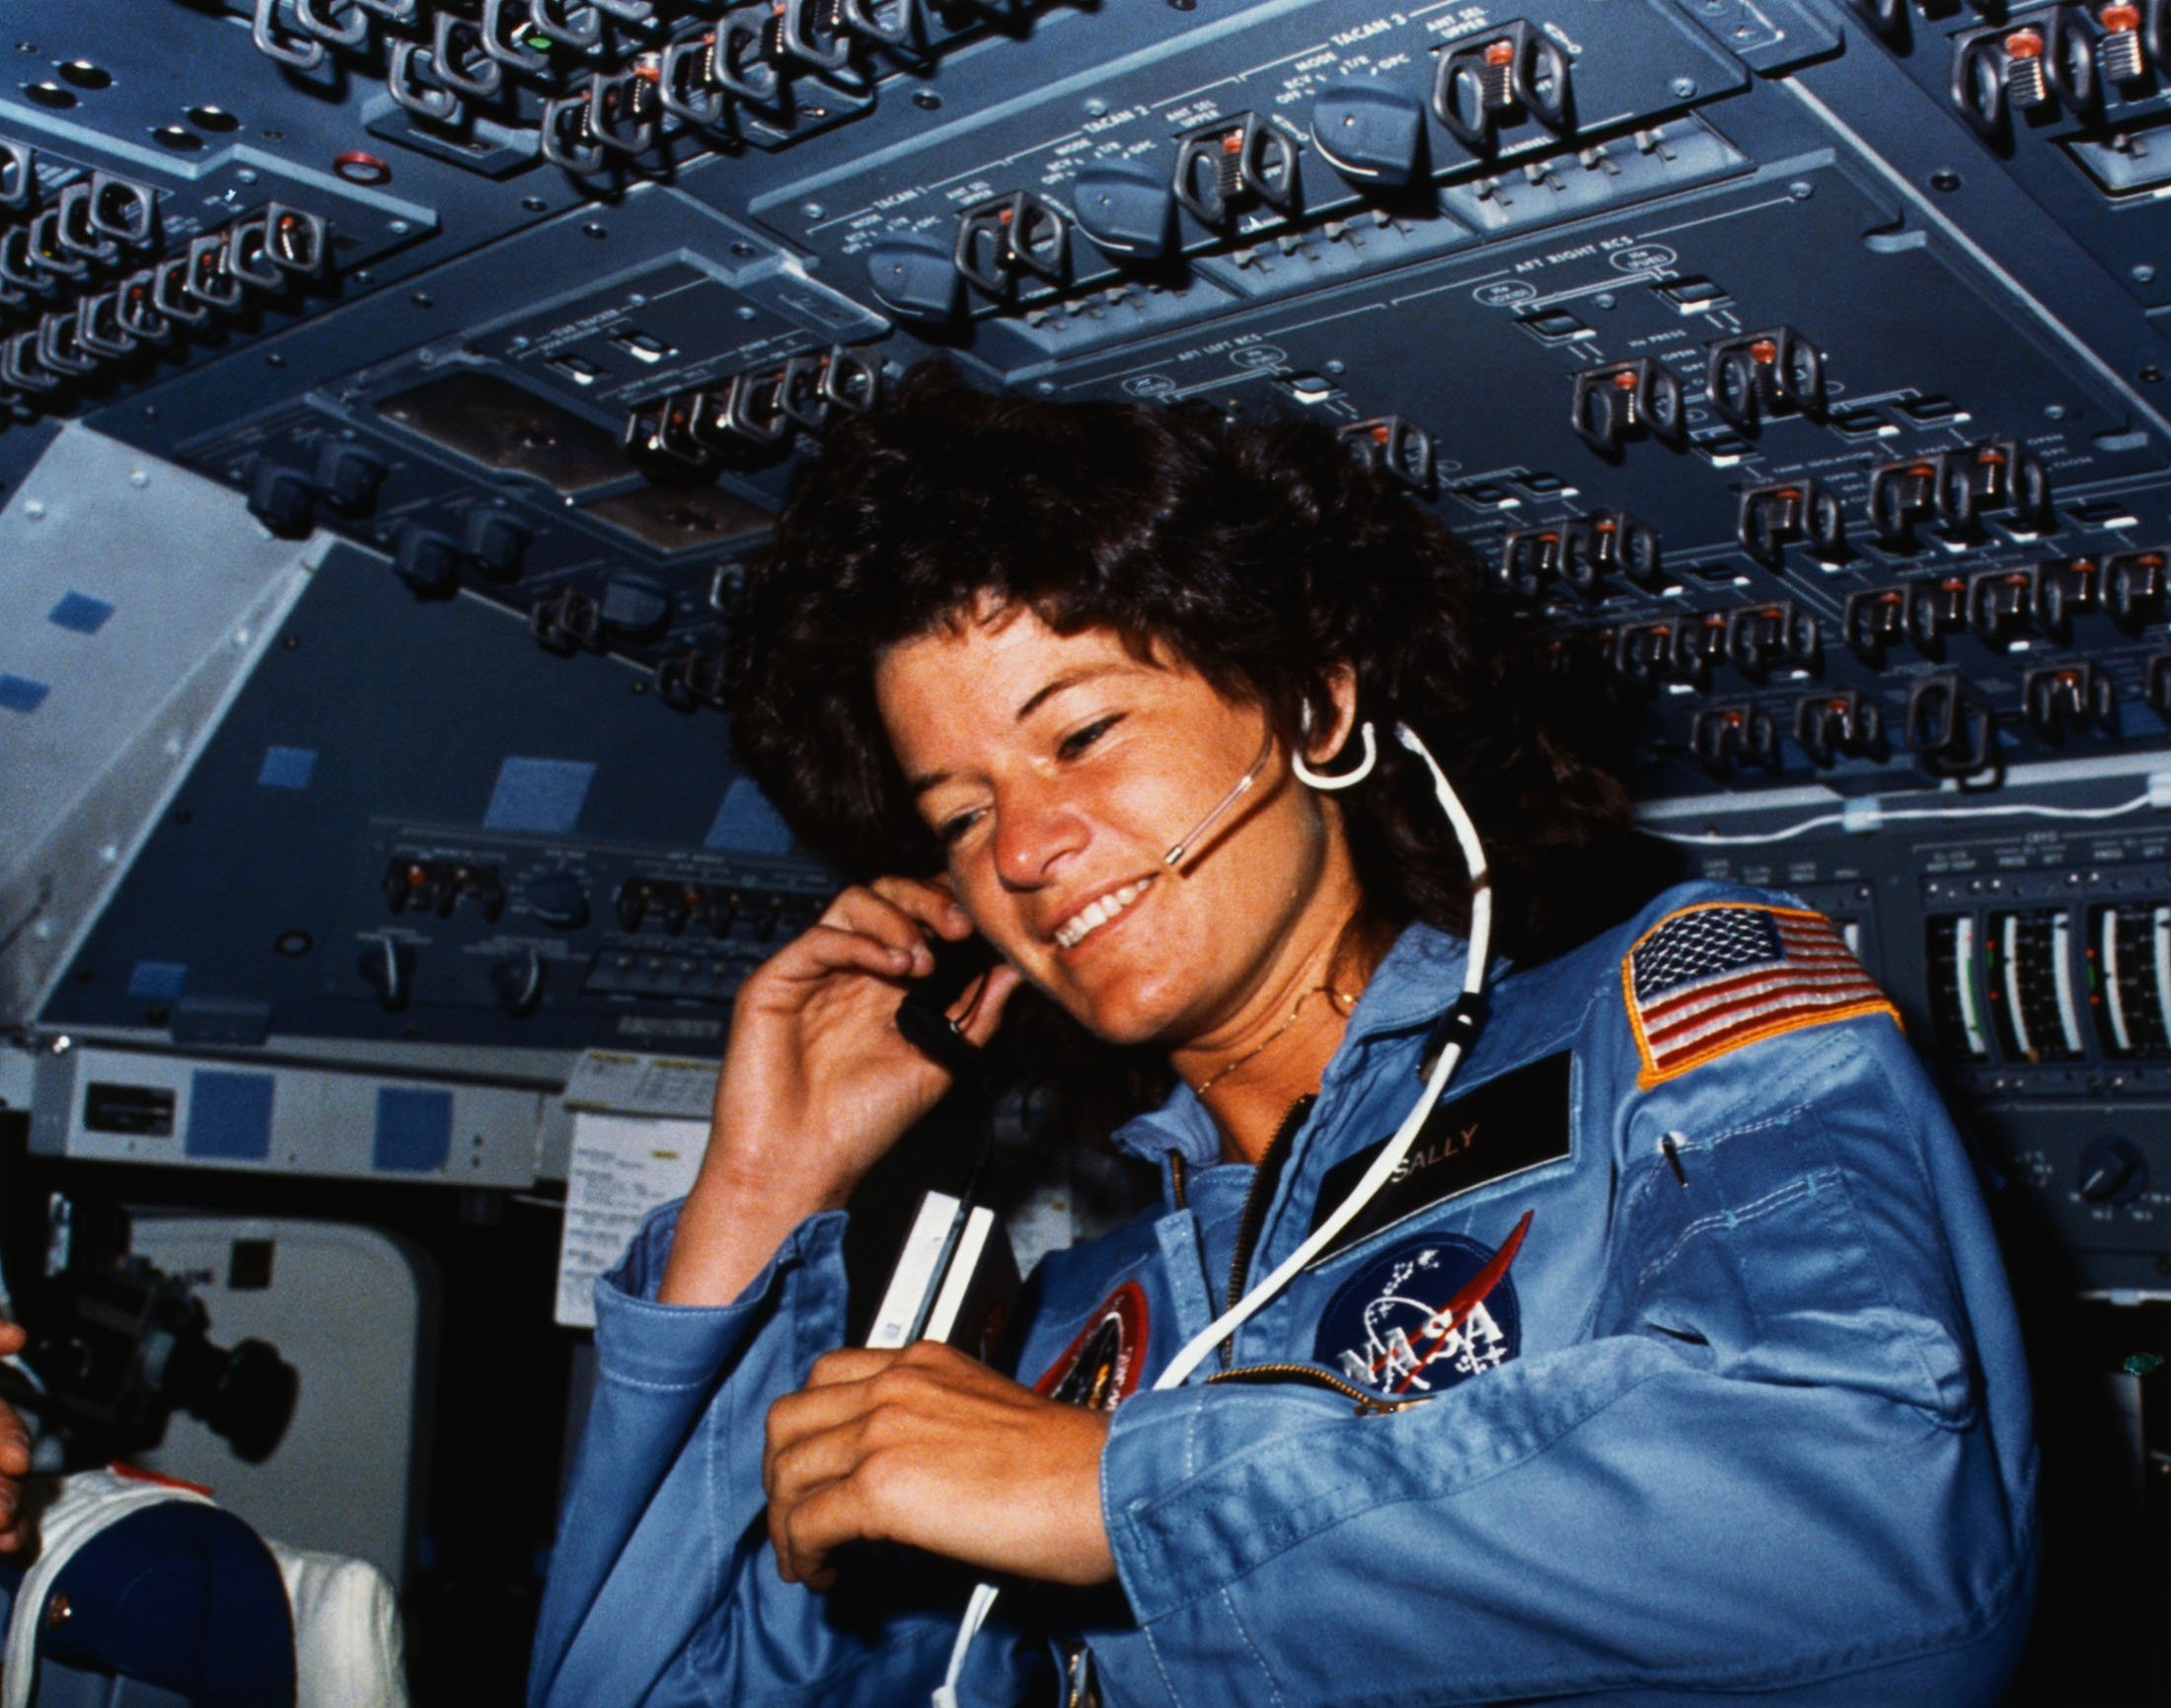 Johnson Space Center, Houston, Texas: Onboard Scene-Astronaut Sally K. Ride, STS-7 mission specialist, communicates with ground controllers from the flight deck of the Earth-orbiting Space Shuttle Challenger. (NASA via Getty Images)